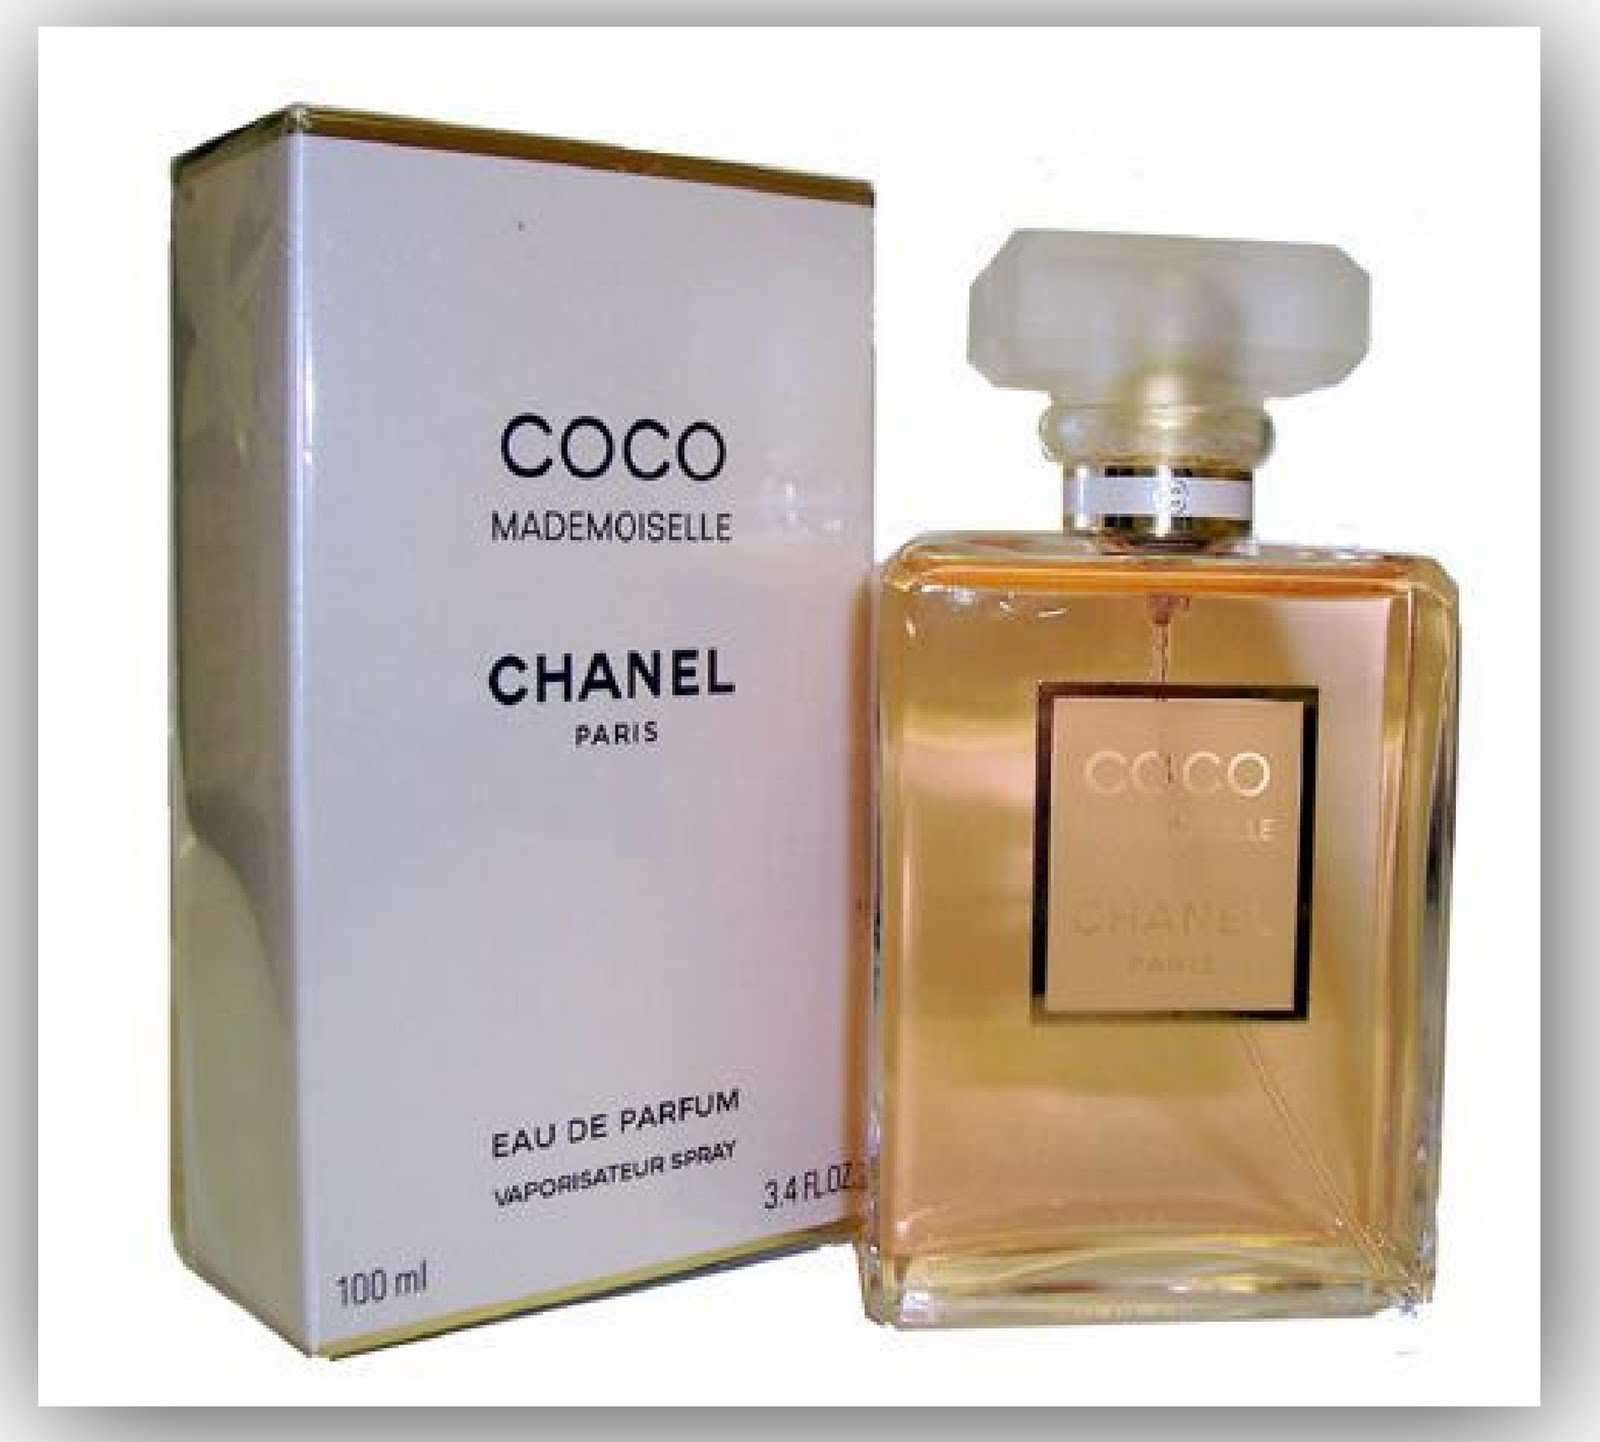 Cosmetics & Perfume: Chanel coco mademoiselle in Spain